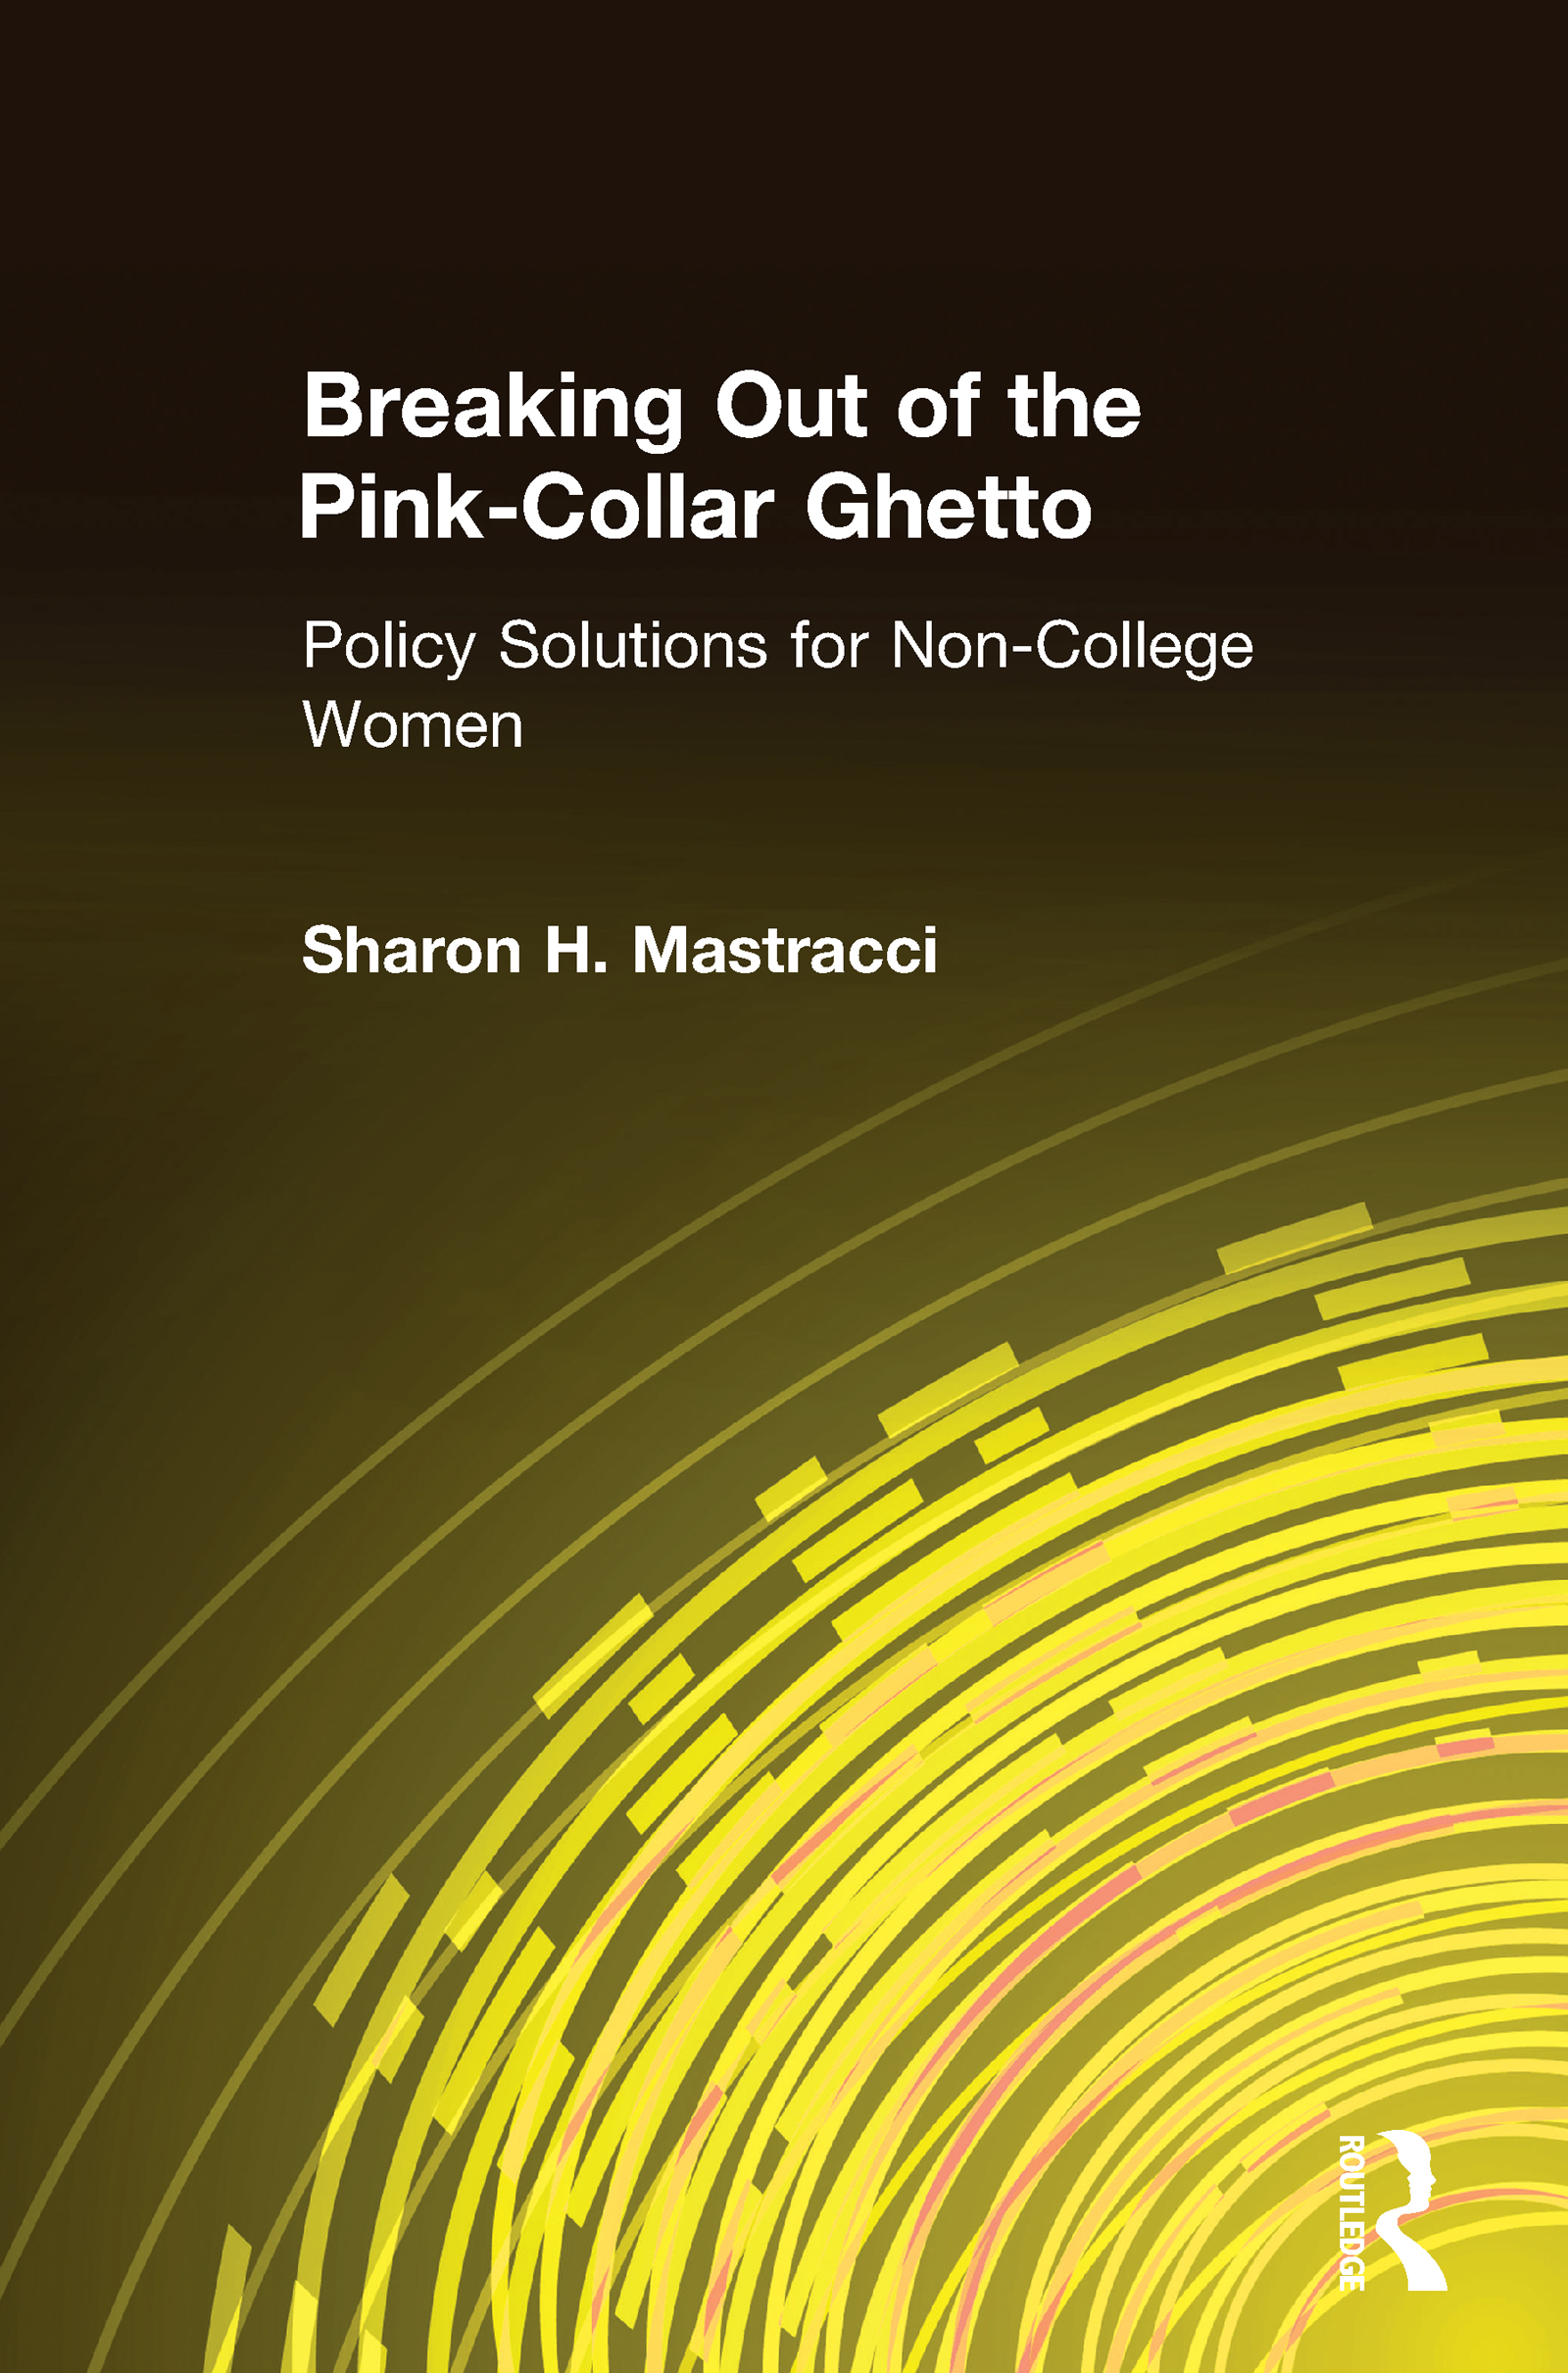 Breaking Out of the Pink-Collar Ghetto: Policy Solutions for Non-College Women: Policy Solutions for Non-College Women, 1st Edition (Hardback) book cover